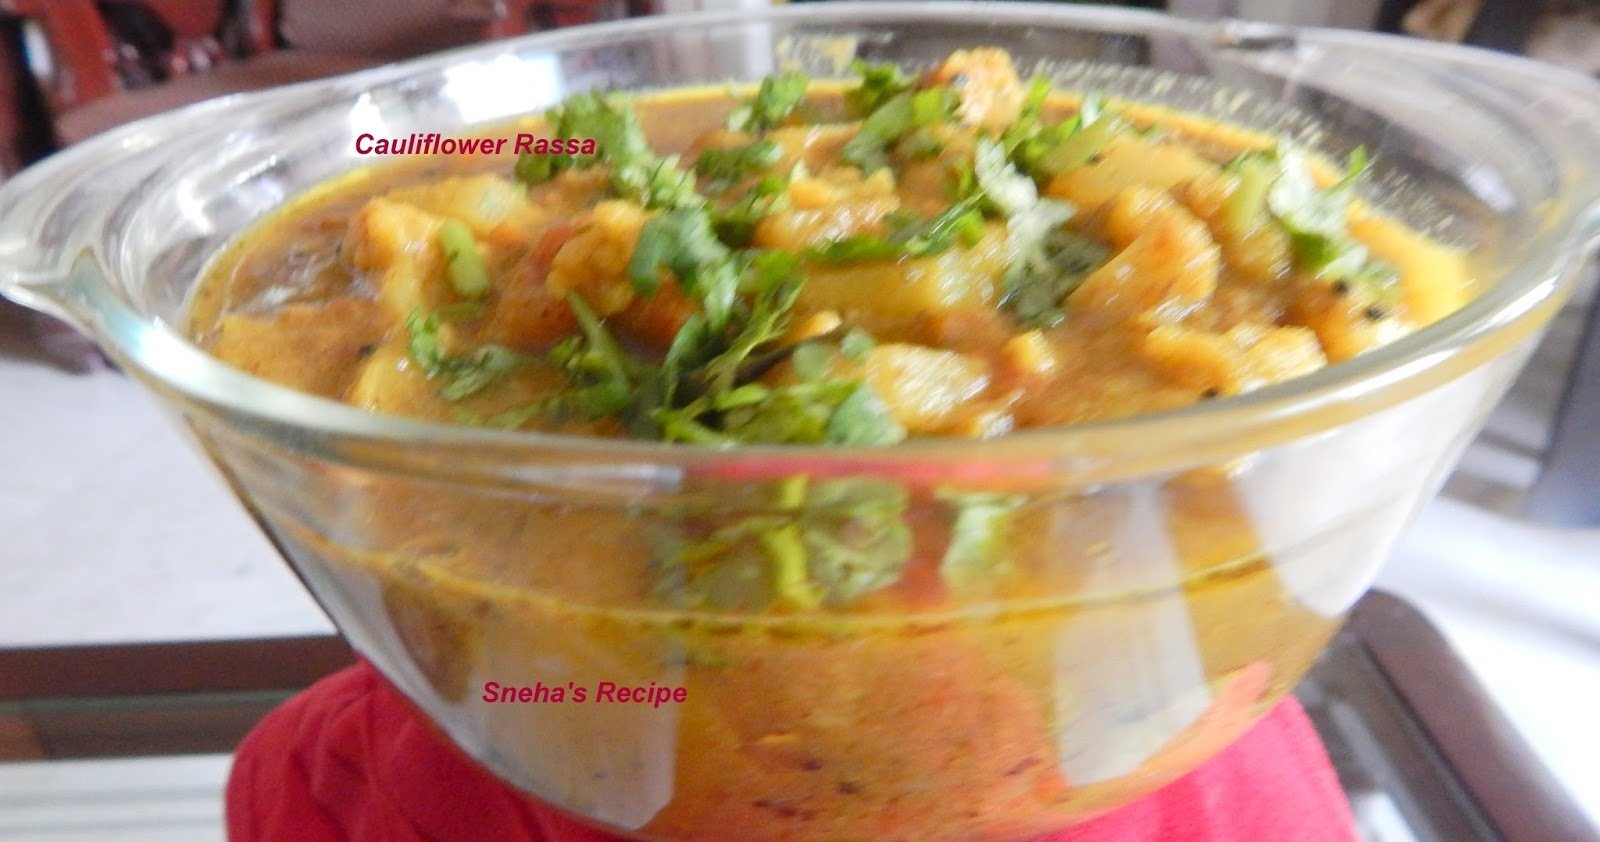 Cauliflower Rassa